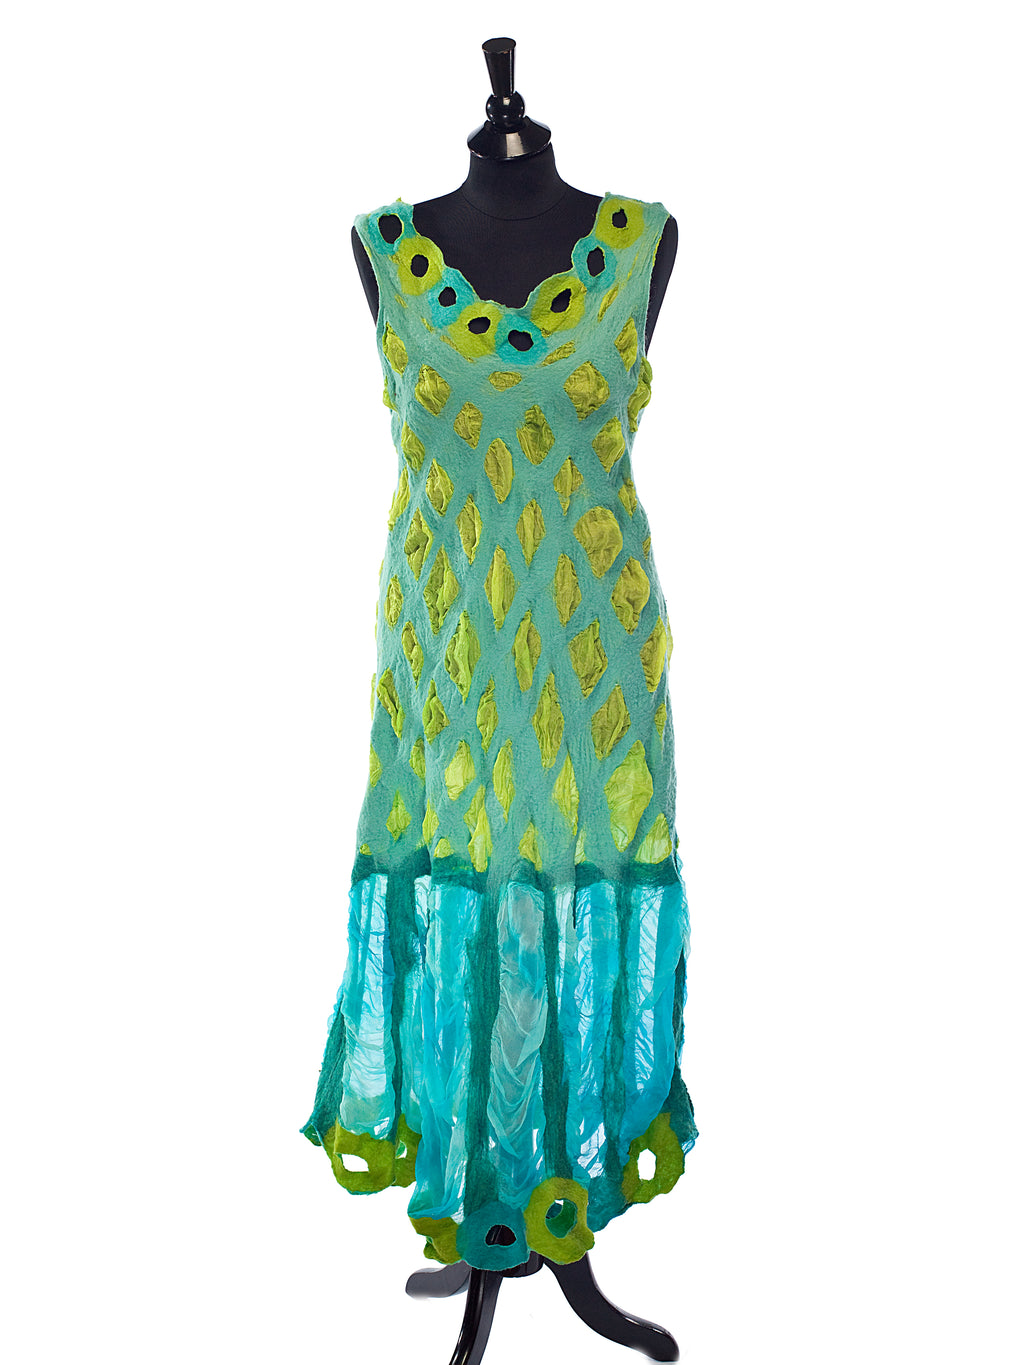 Turquoise + Lime Holey dress